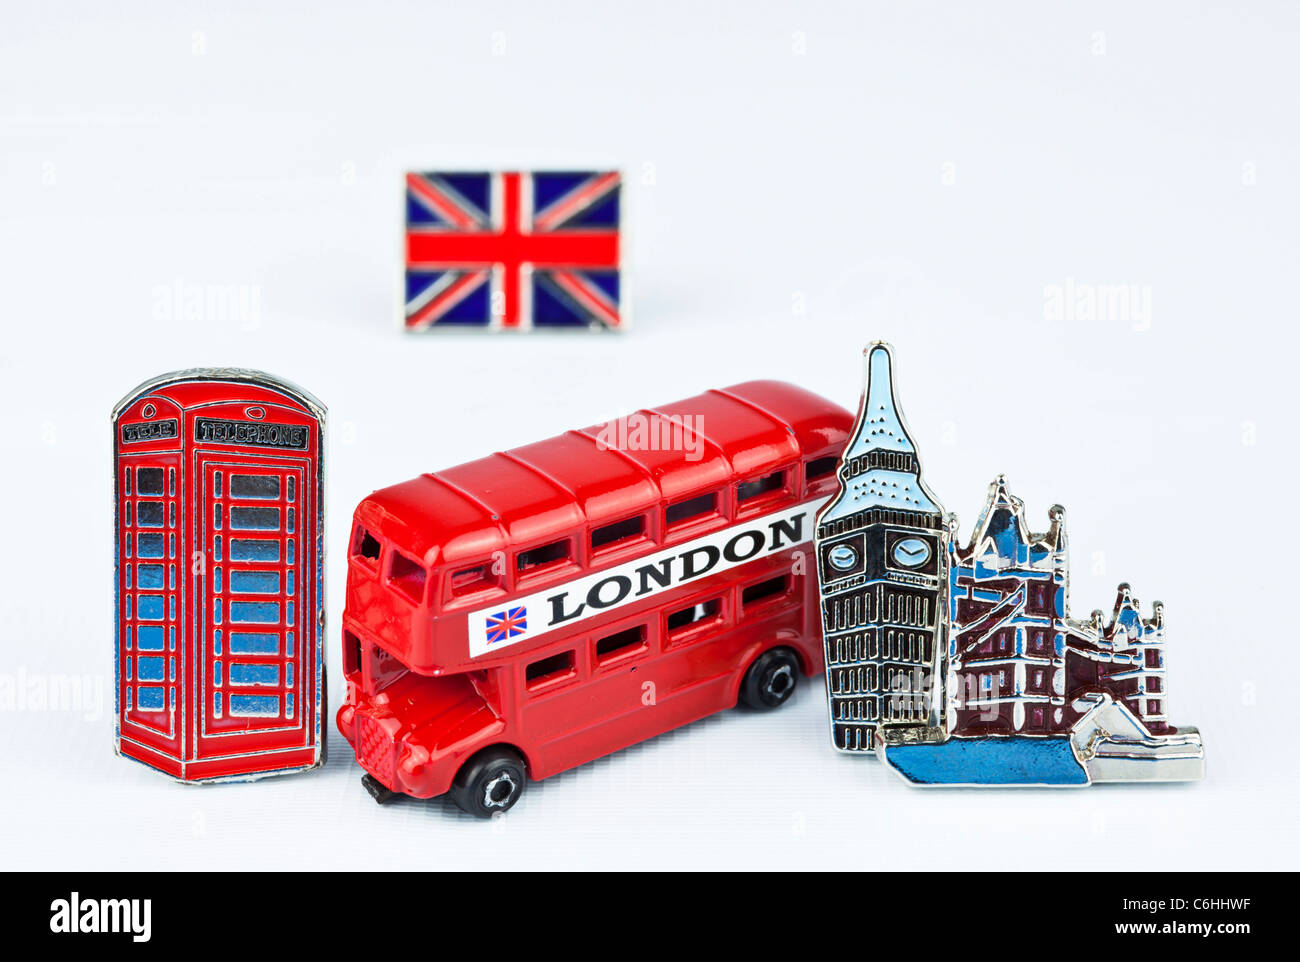 London souvenirs cut out on a white background - Stock Image